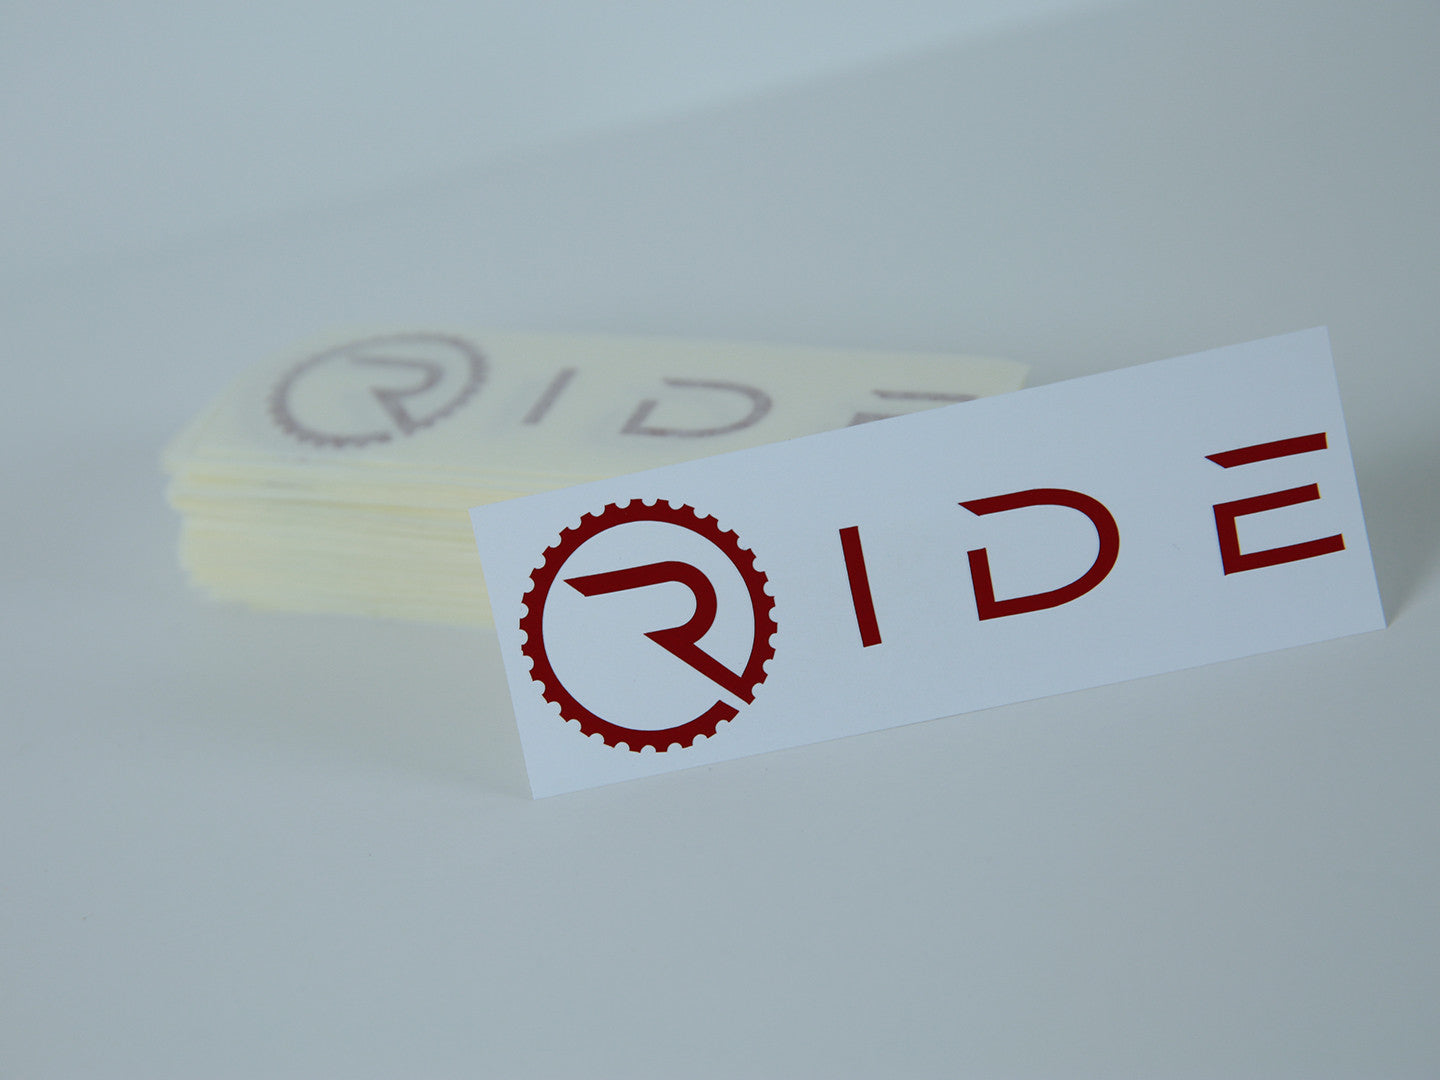 Ride Decal - Reflective Red - Ride Apparel Co.